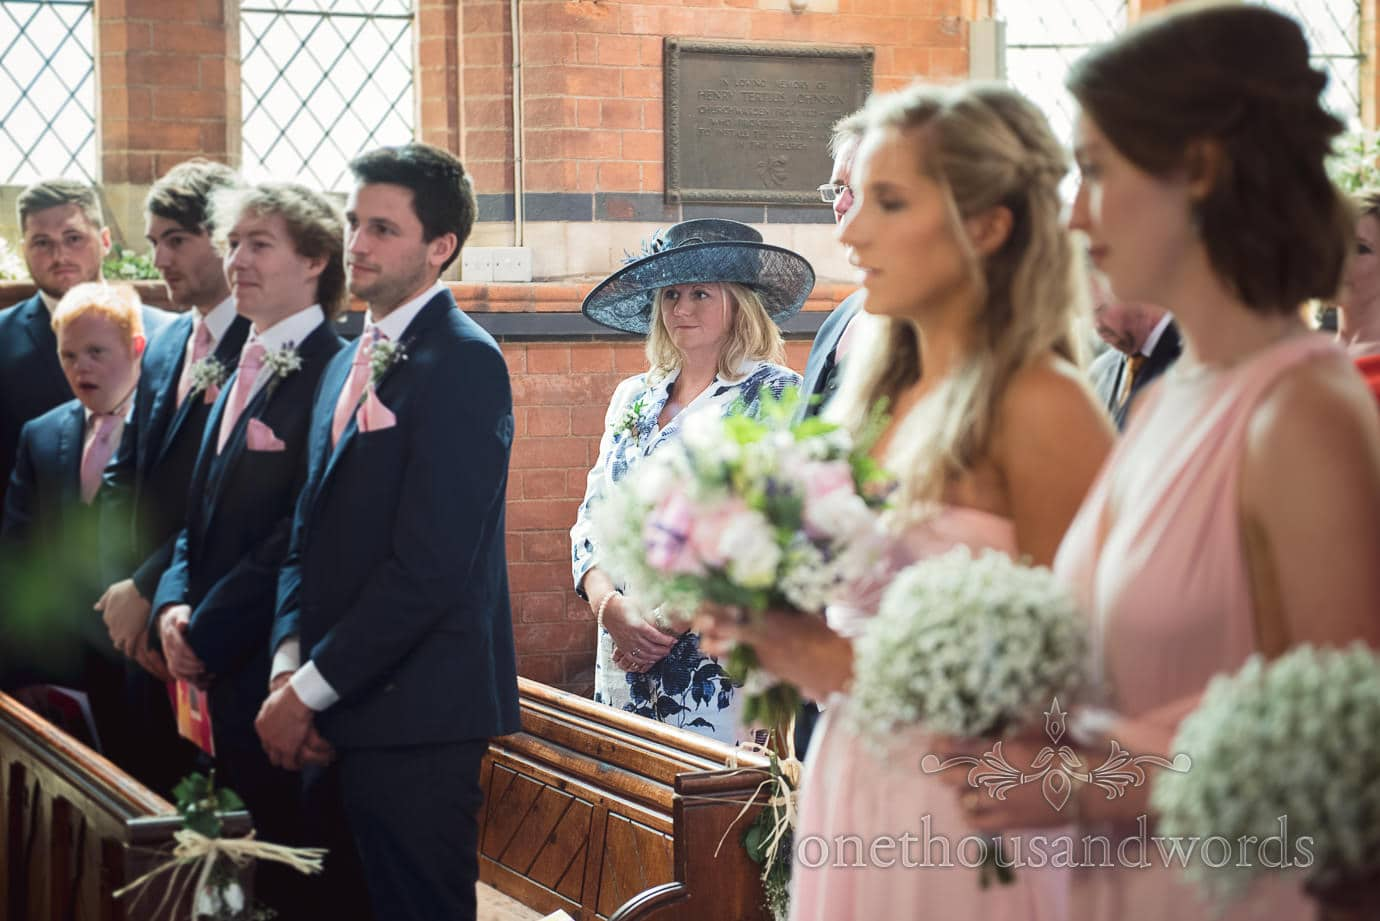 Mother of the groom wears blue wedding hat at church wedding ceremony